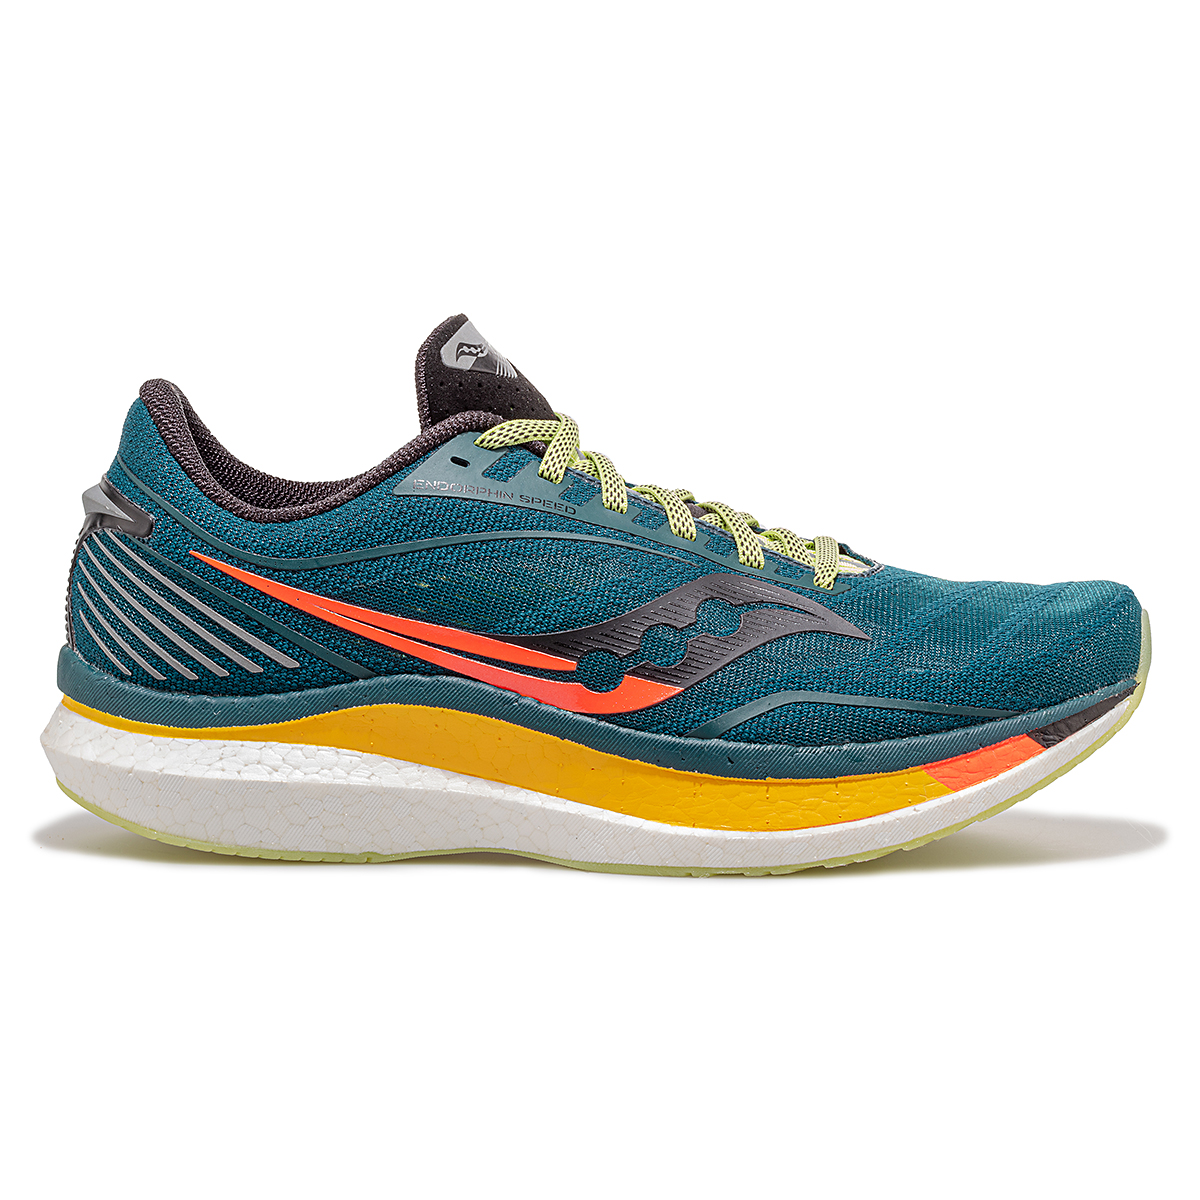 Men's Saucony Jackalope 2.0 Endorphin Speed Running Shoe - Color: Jackalope - Size: 7 - Width: Regular, Jackalope, large, image 1